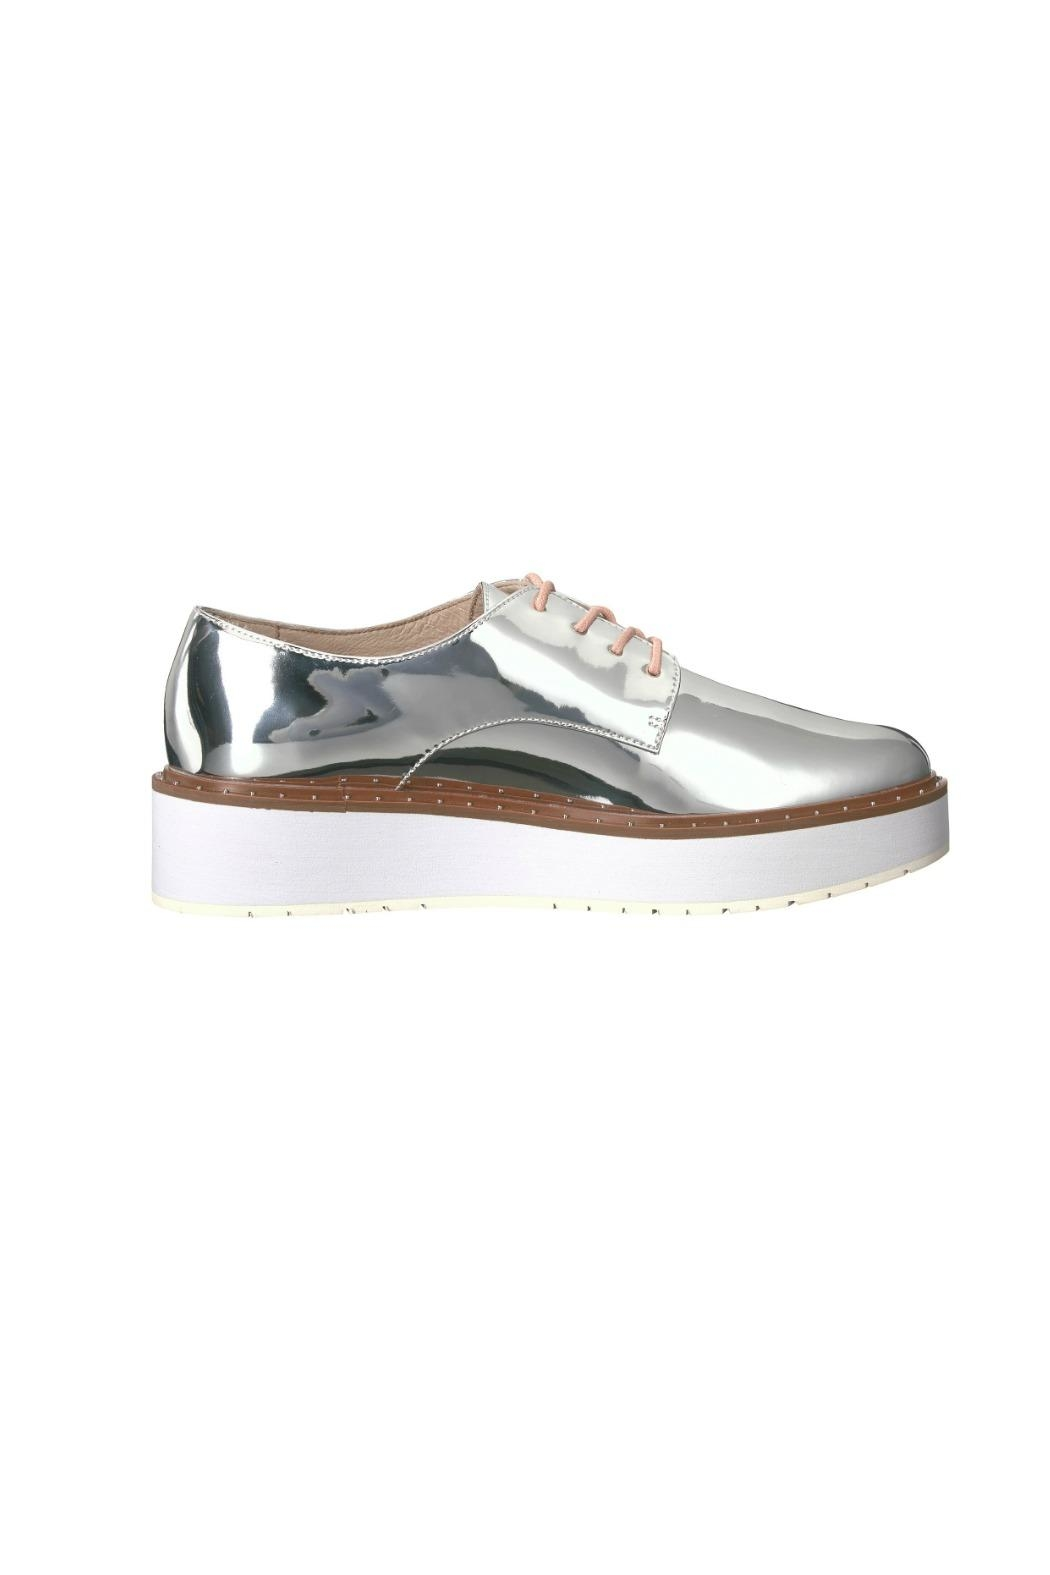 Chinese Laundry Cecilia Platform Oxford Shoes - Side Cropped Image